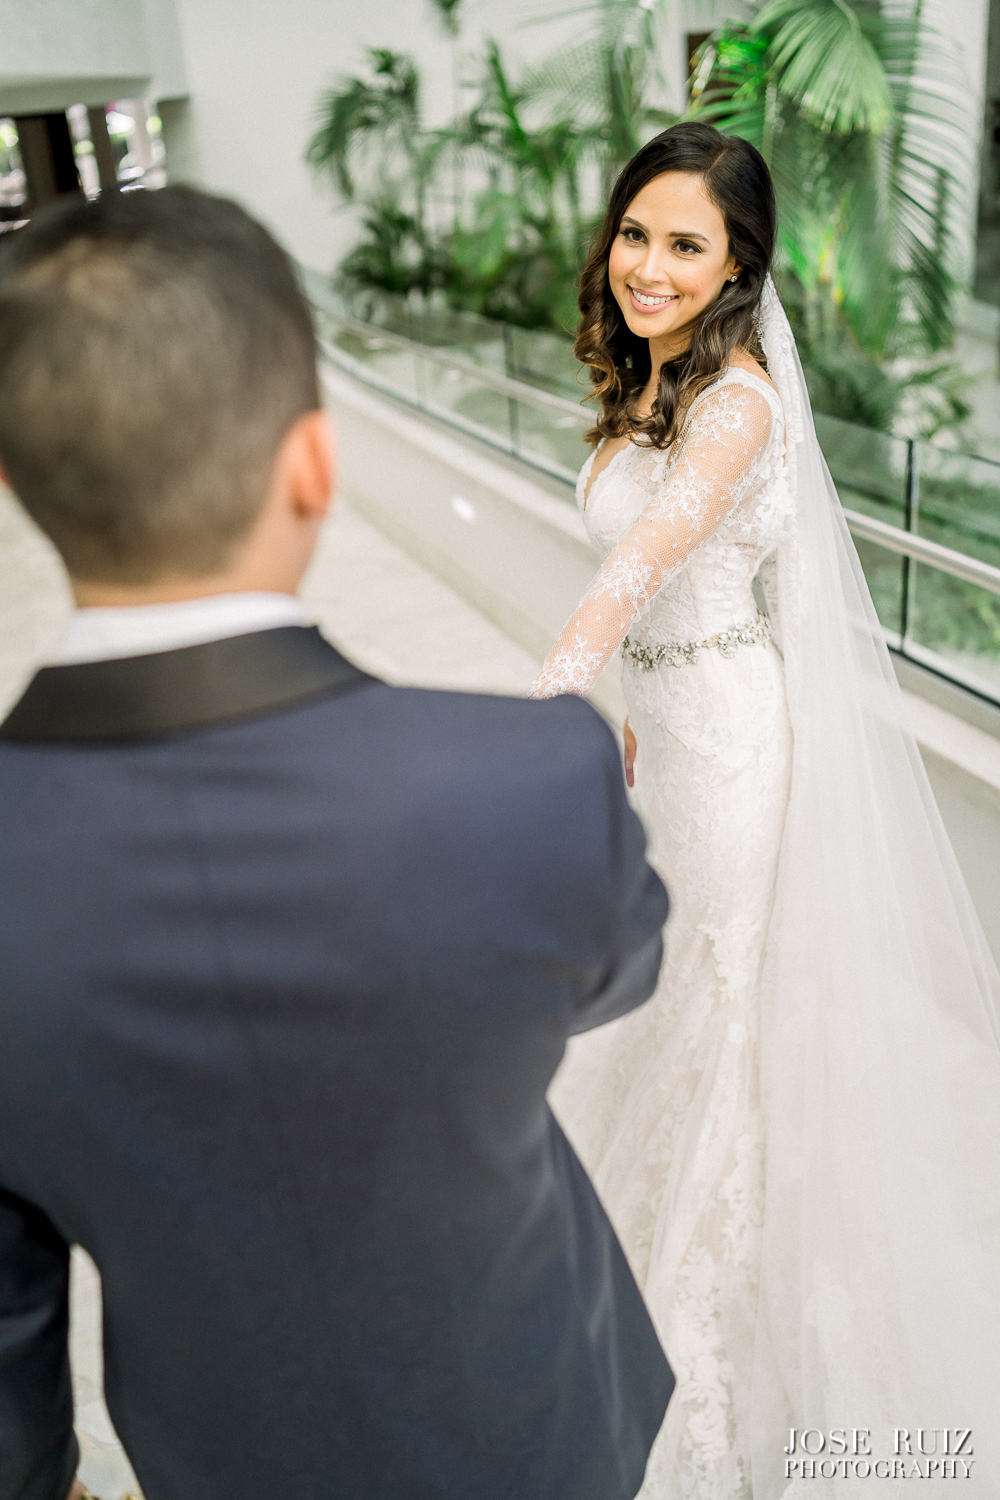 Jose Ruiz Photography- Veronica & Ivan-0115.jpg